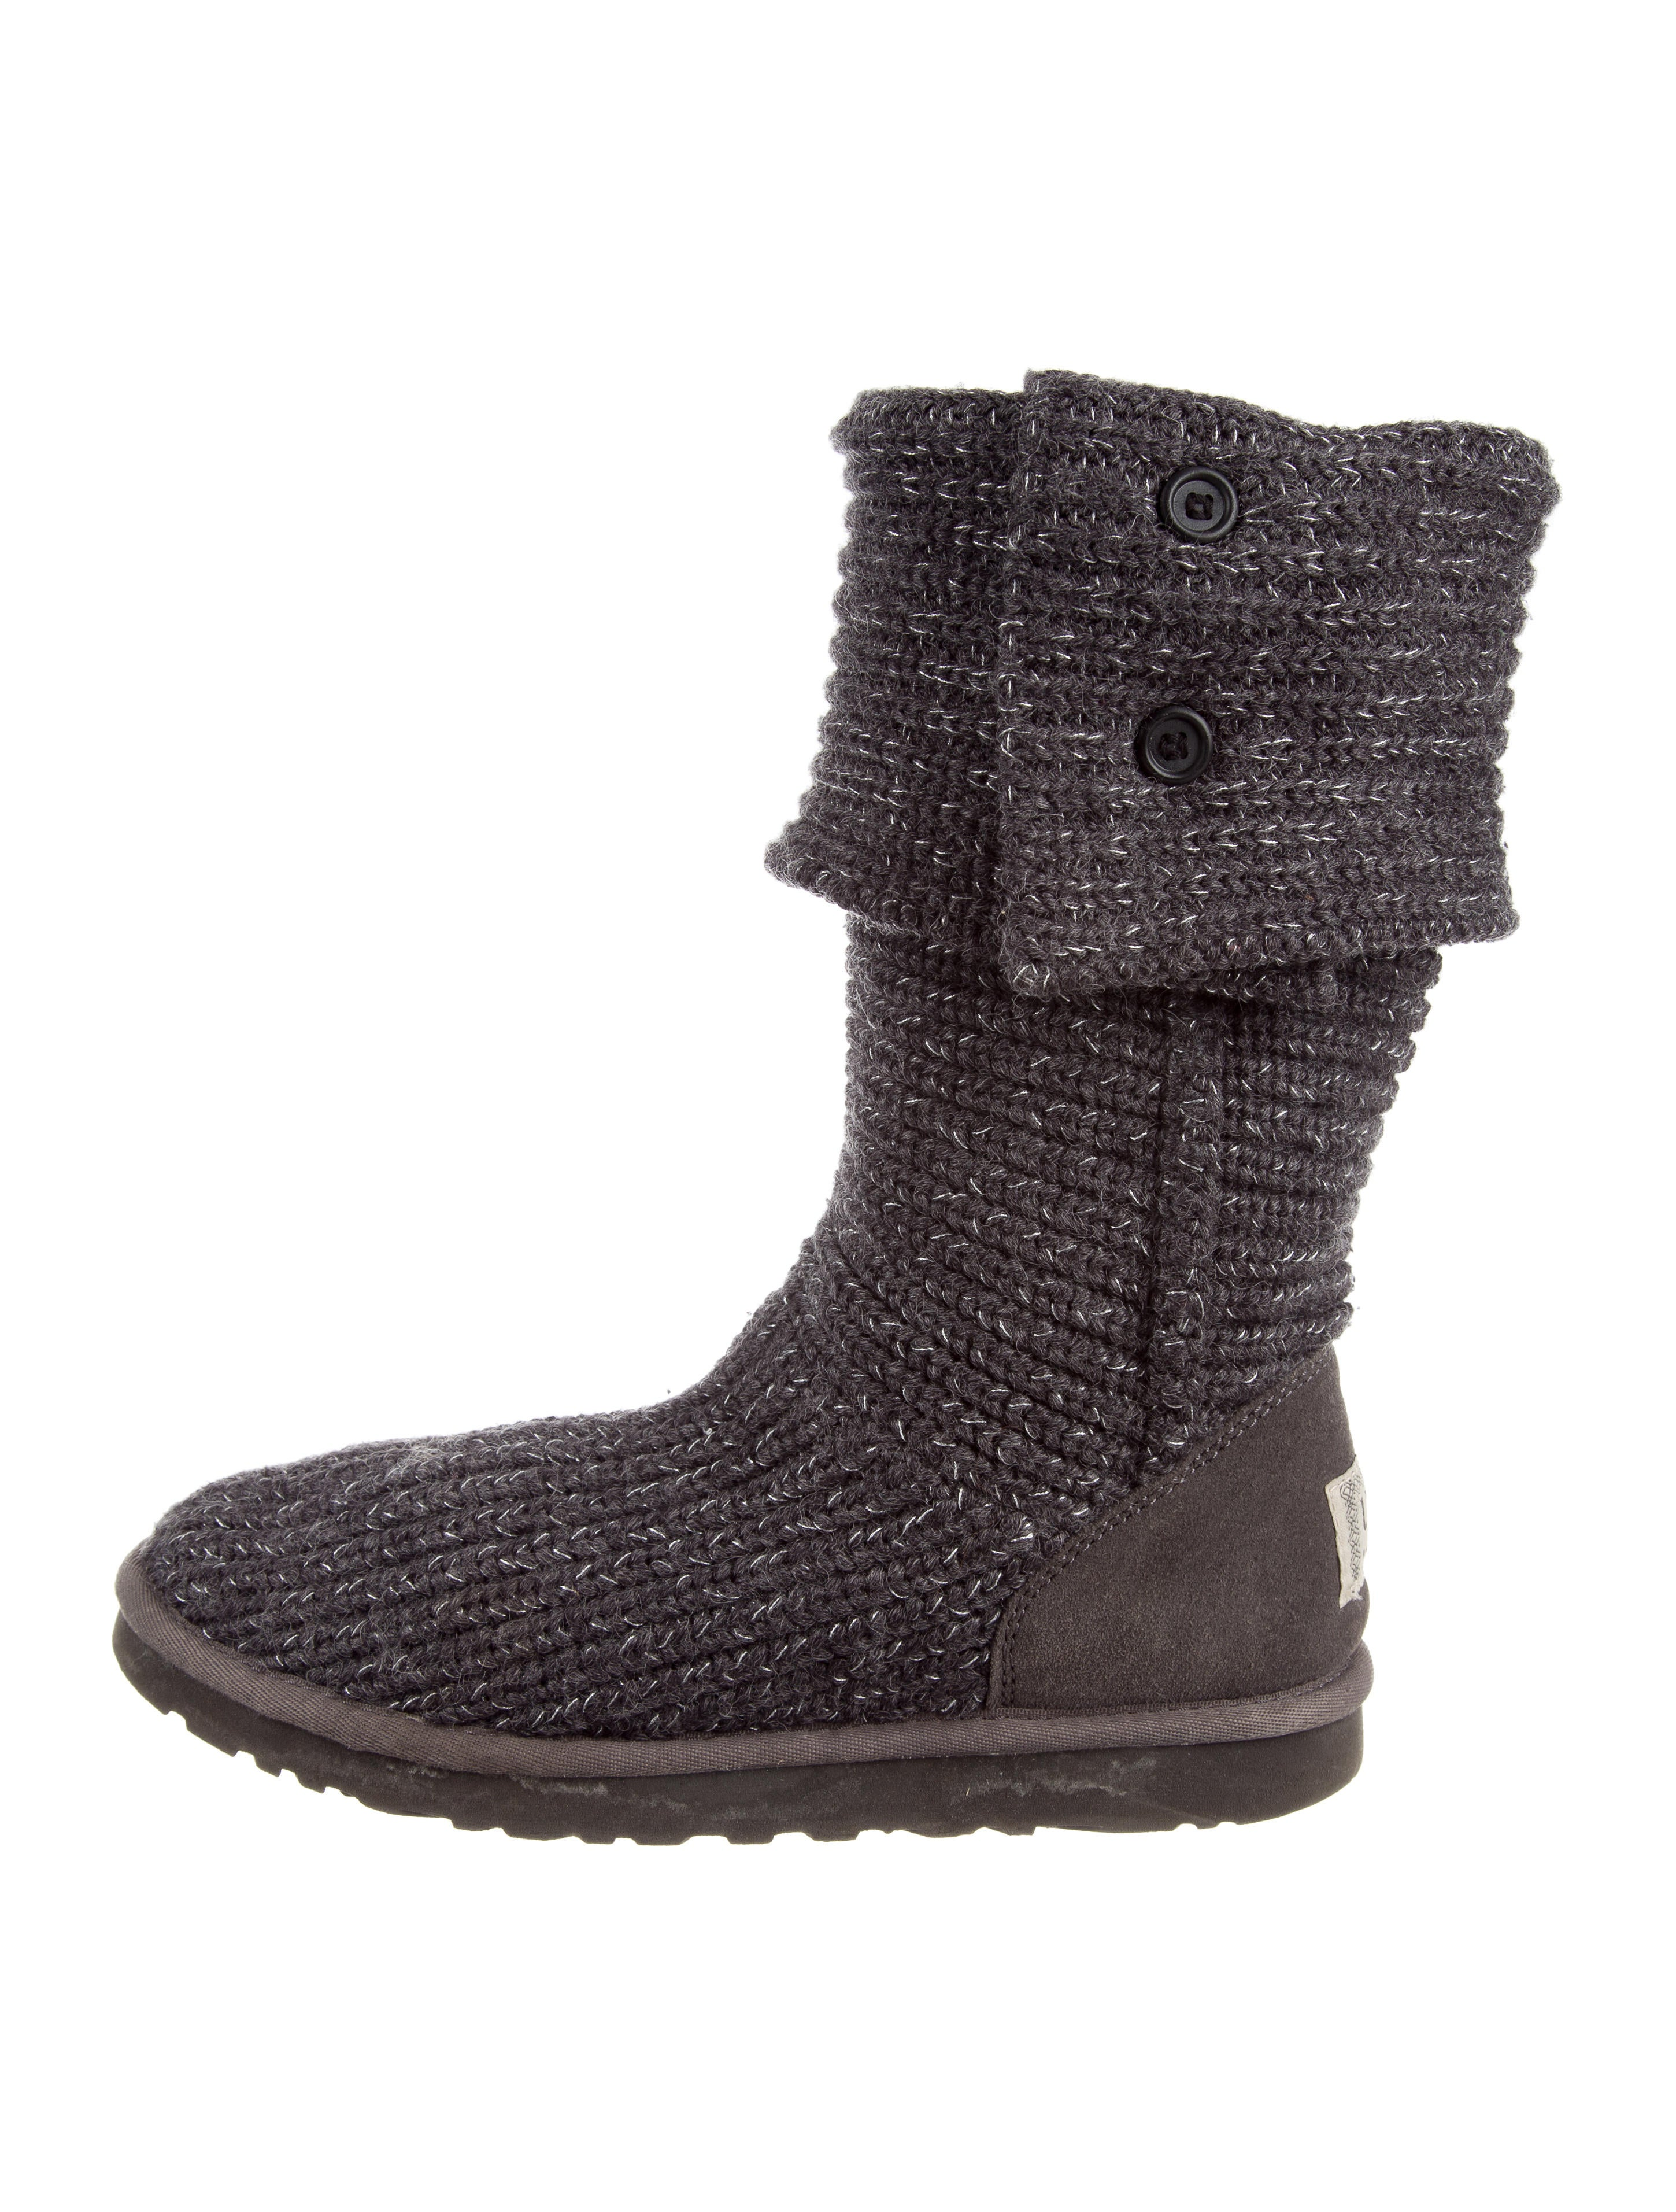 buy online with paypal fake online UGG Australia Knit Suede-Trimmed Boots XWbwMa0